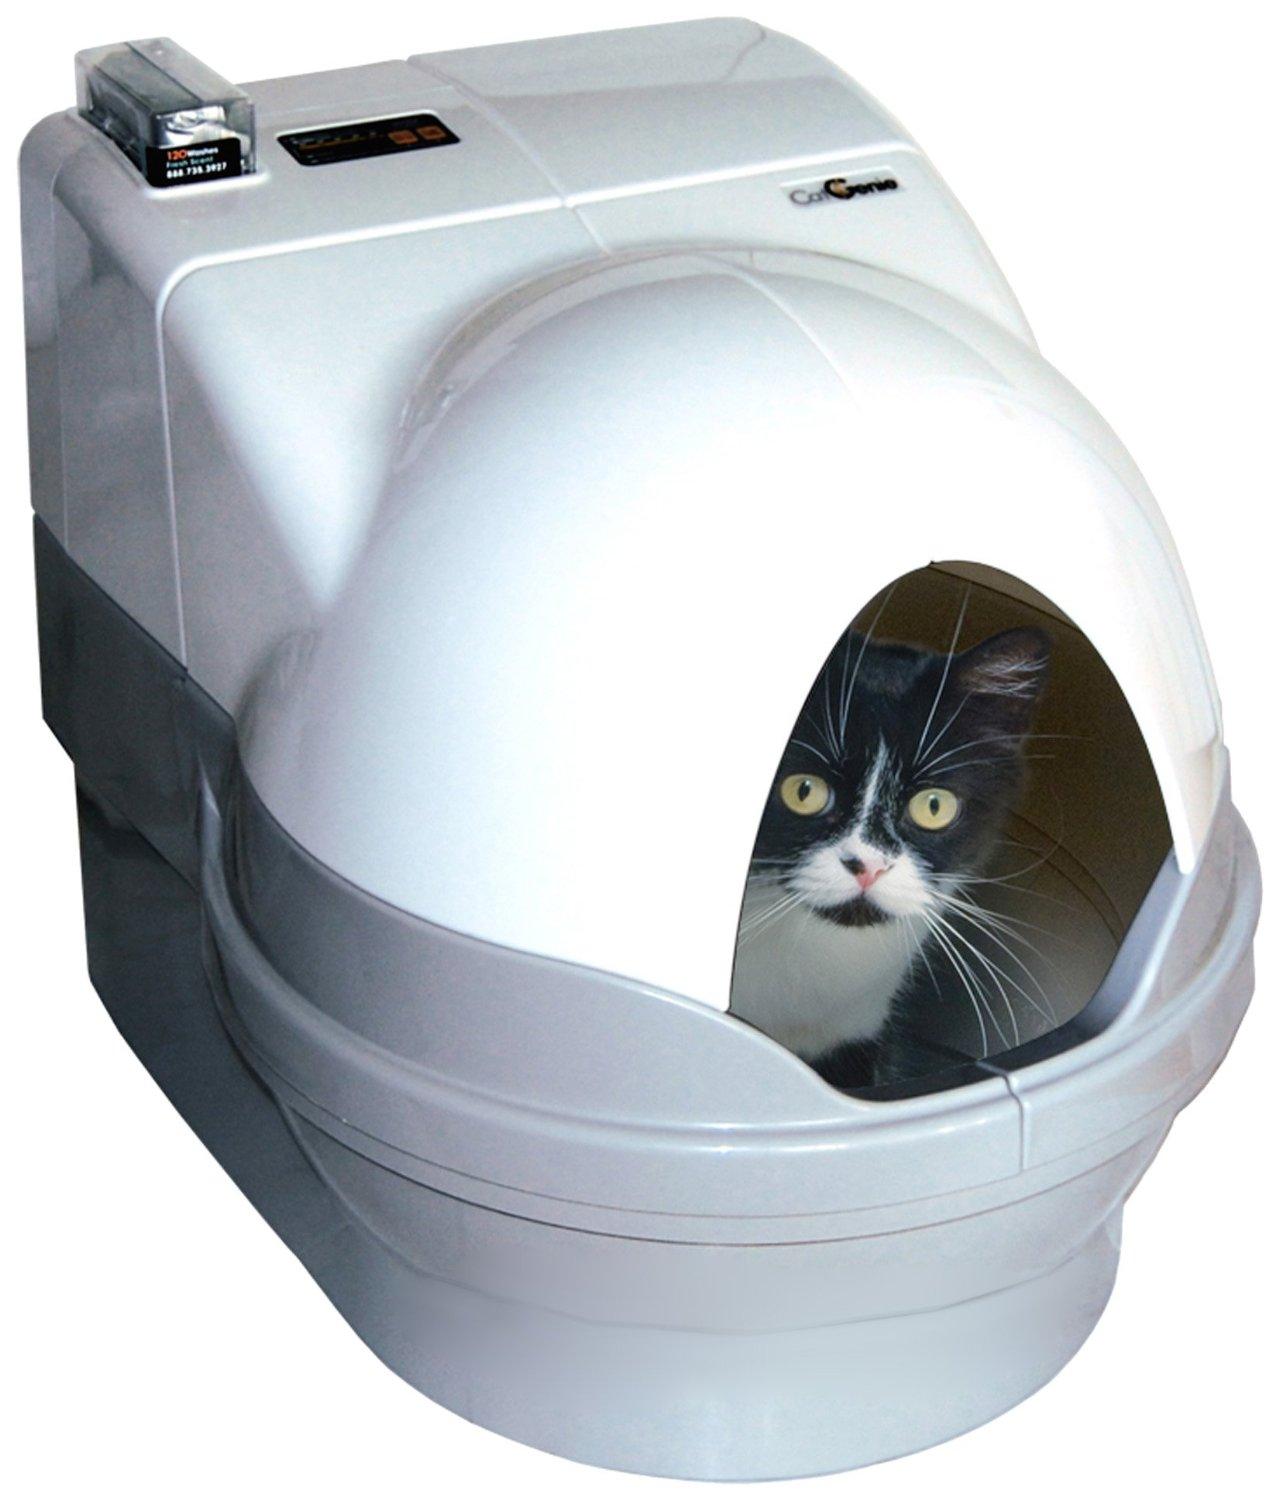 Top 10 Best Cat Litter Boxes of 2017